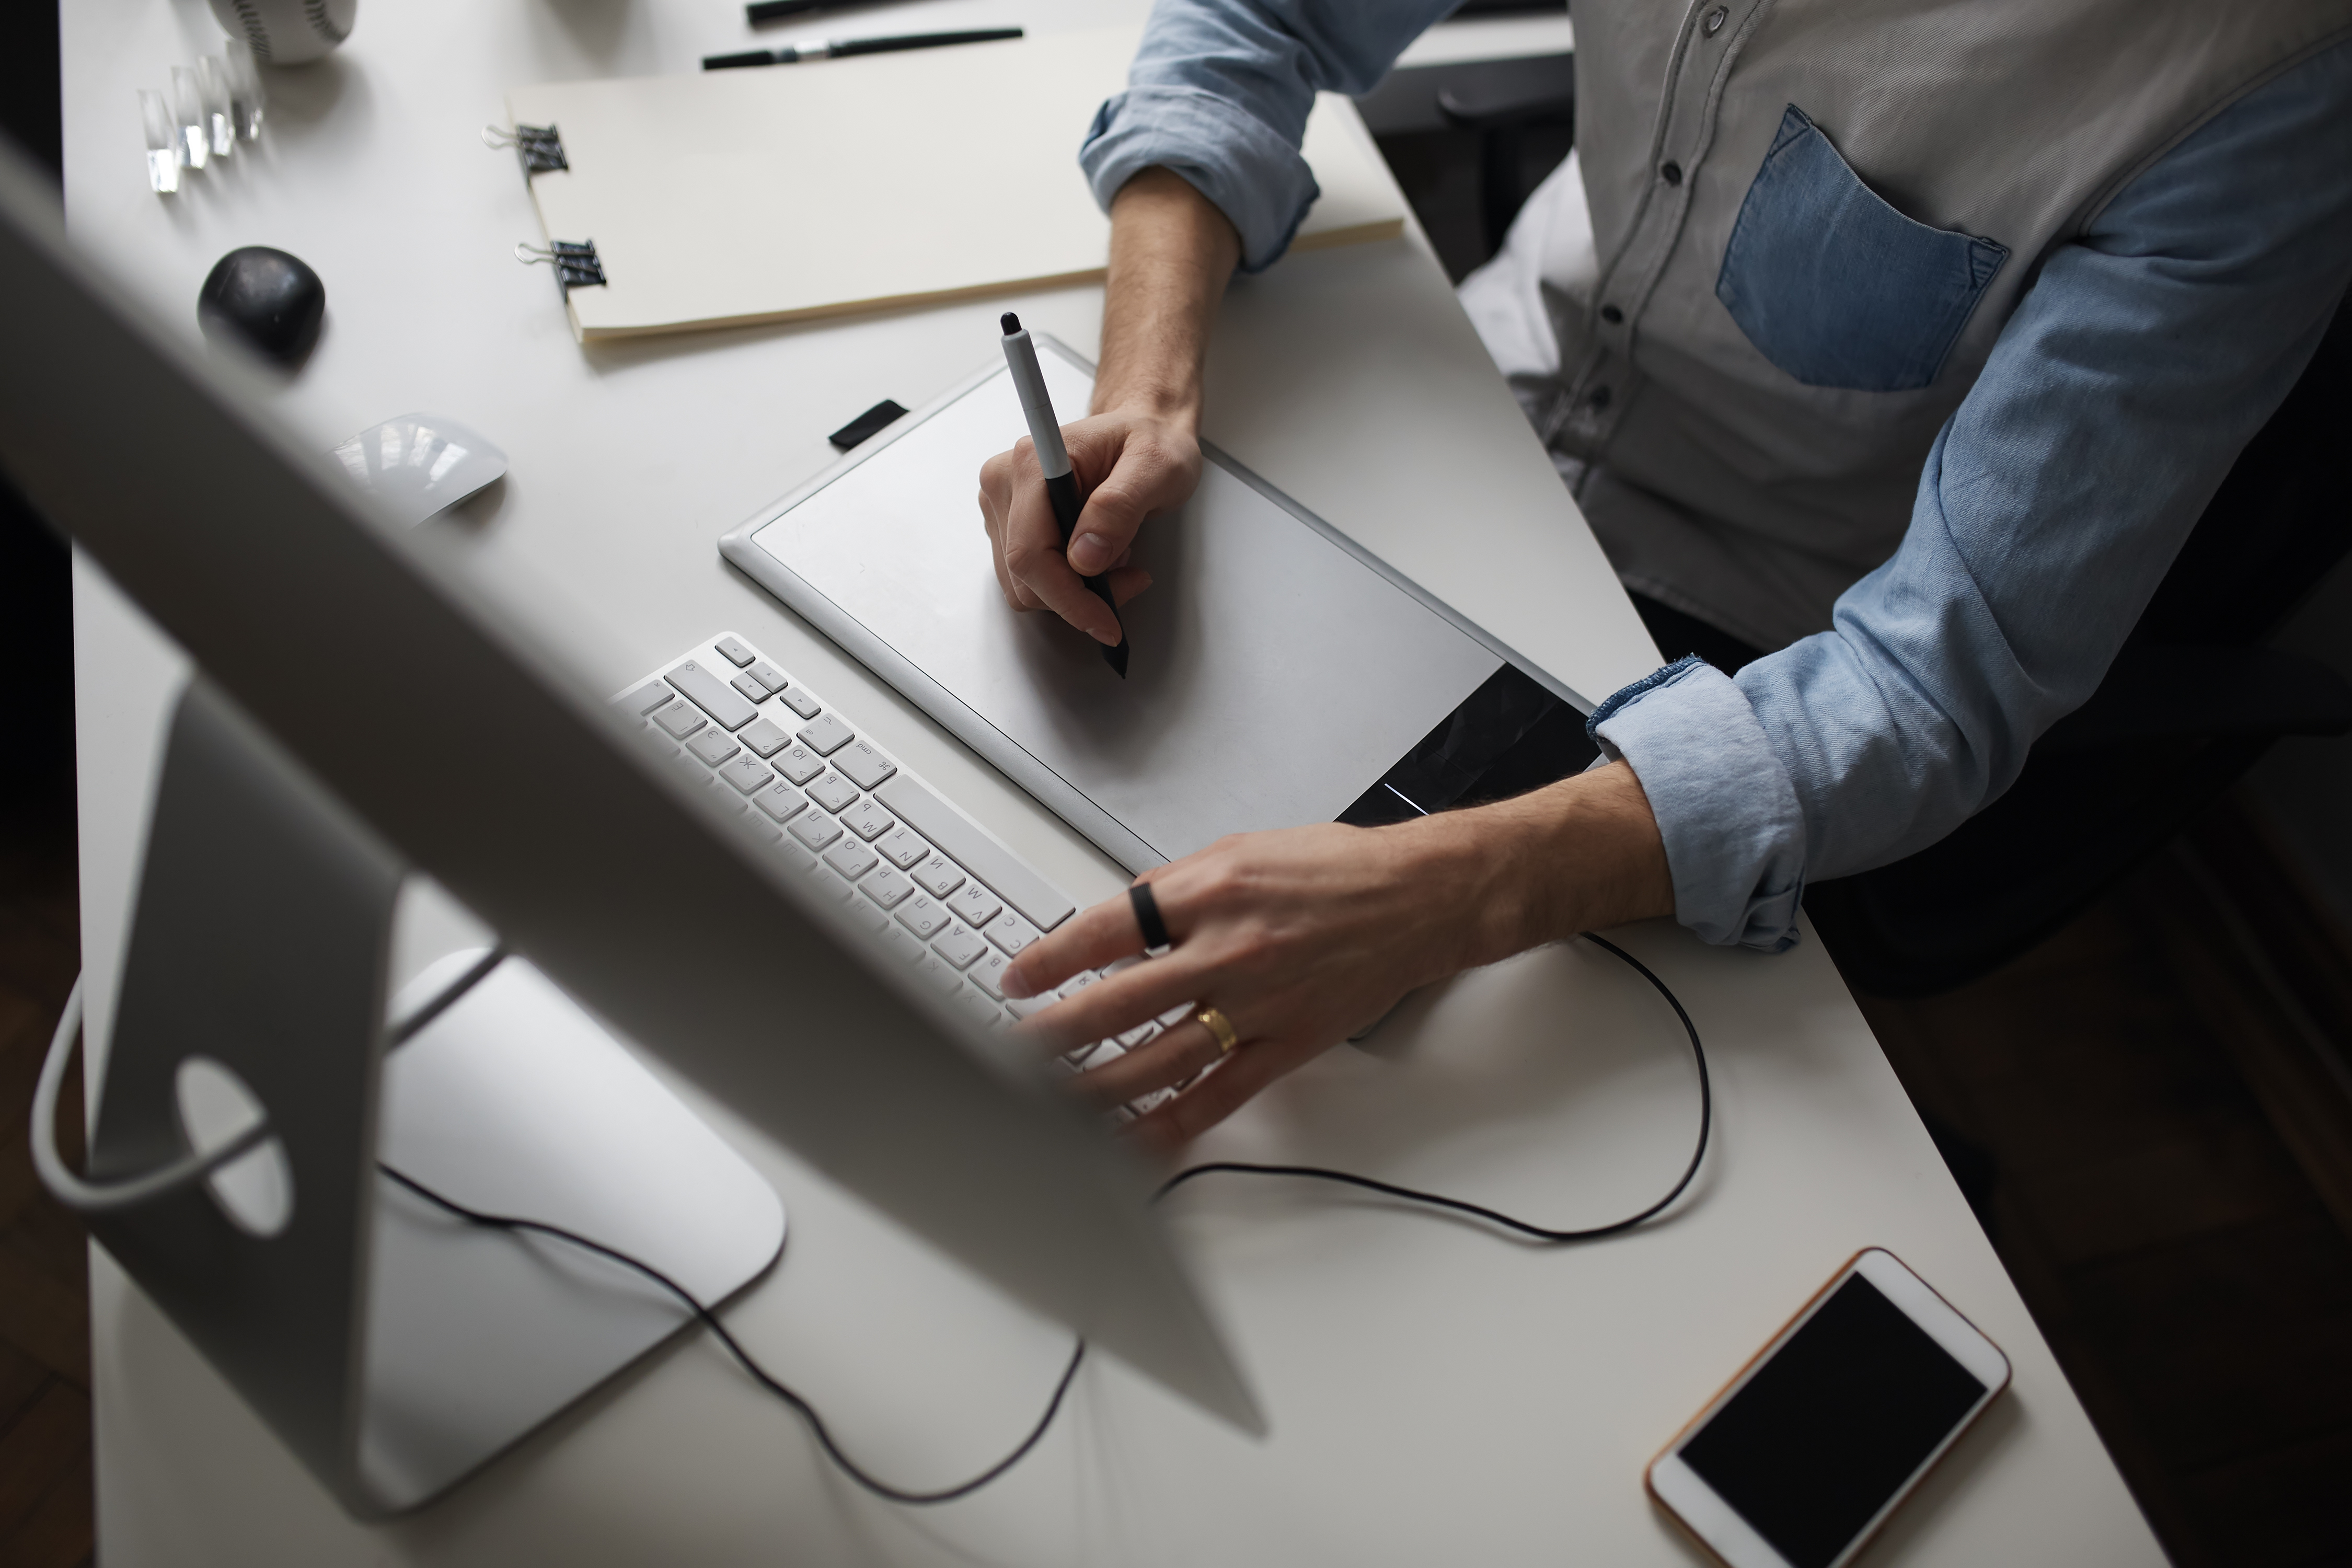 young-male-designer-using-graphics-tablet-while-working-with-com.jpg